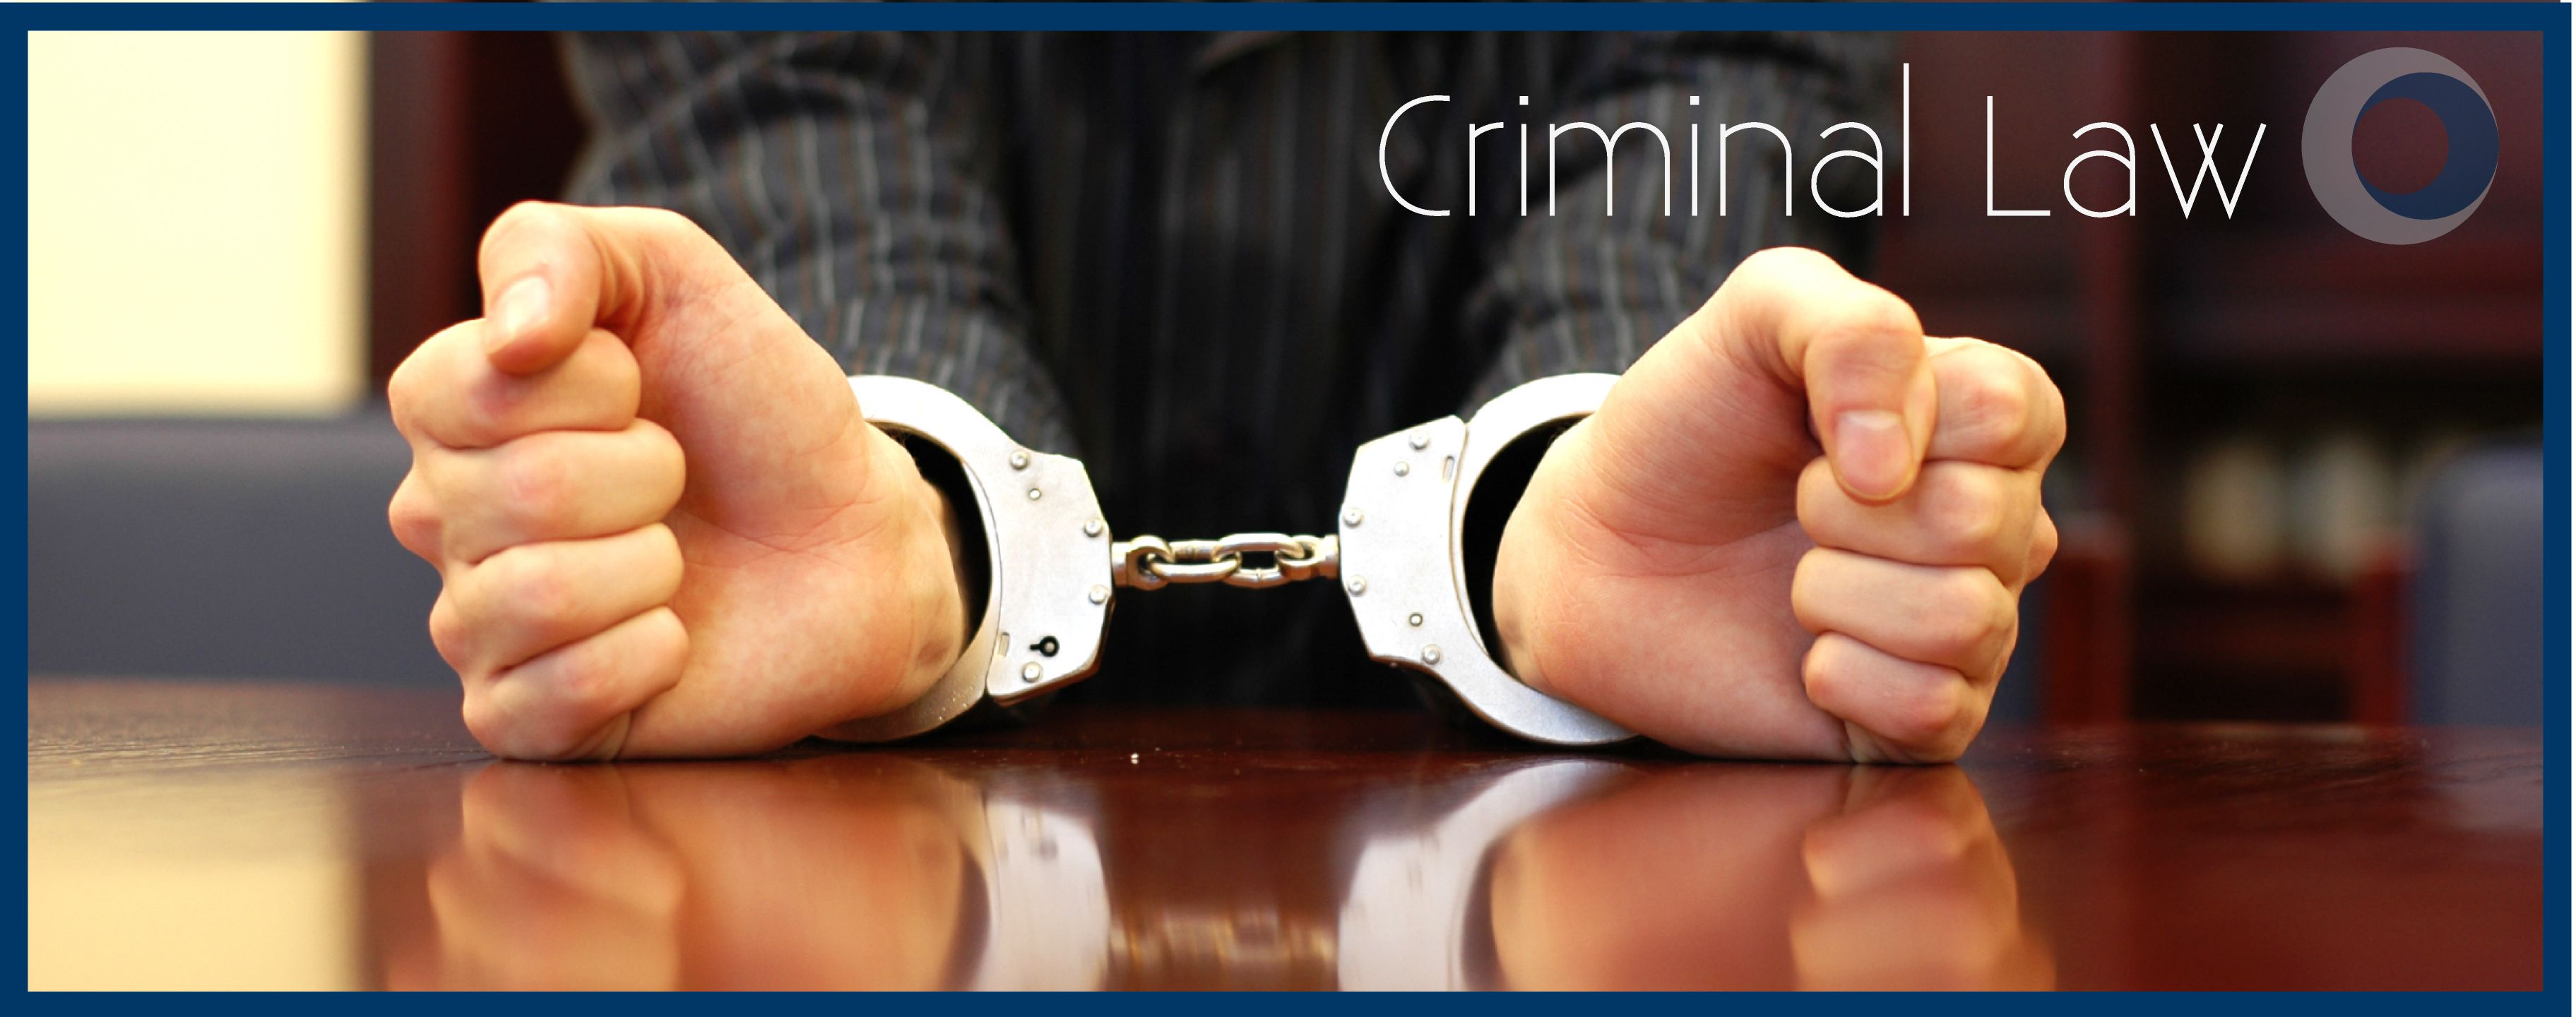 Get Victory Hire the Best Criminal Lawyer